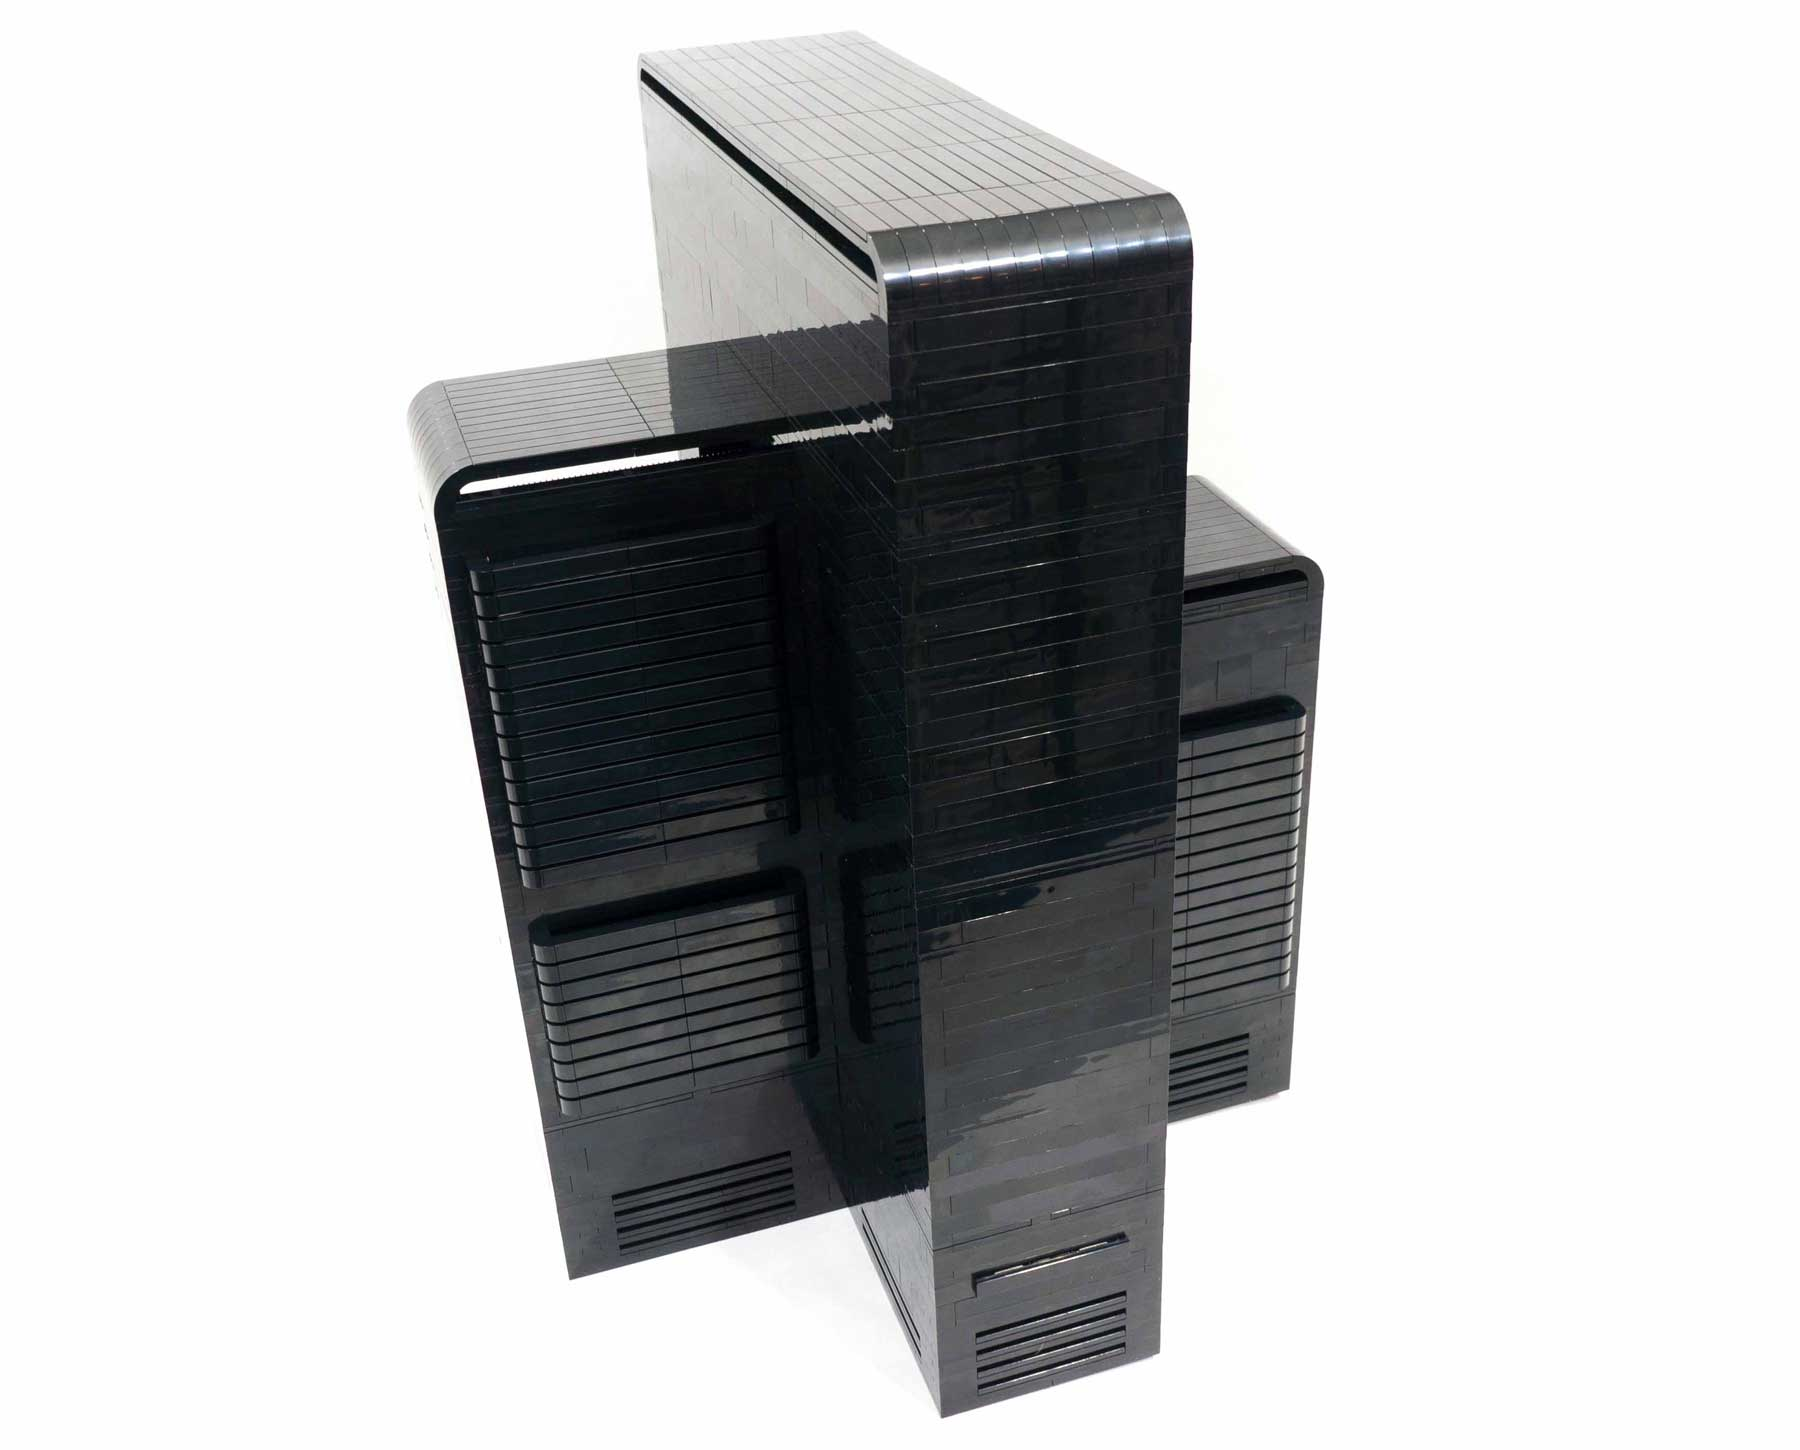 Check out this amazing Lego Gaming PC that's looks just Incredible! 1